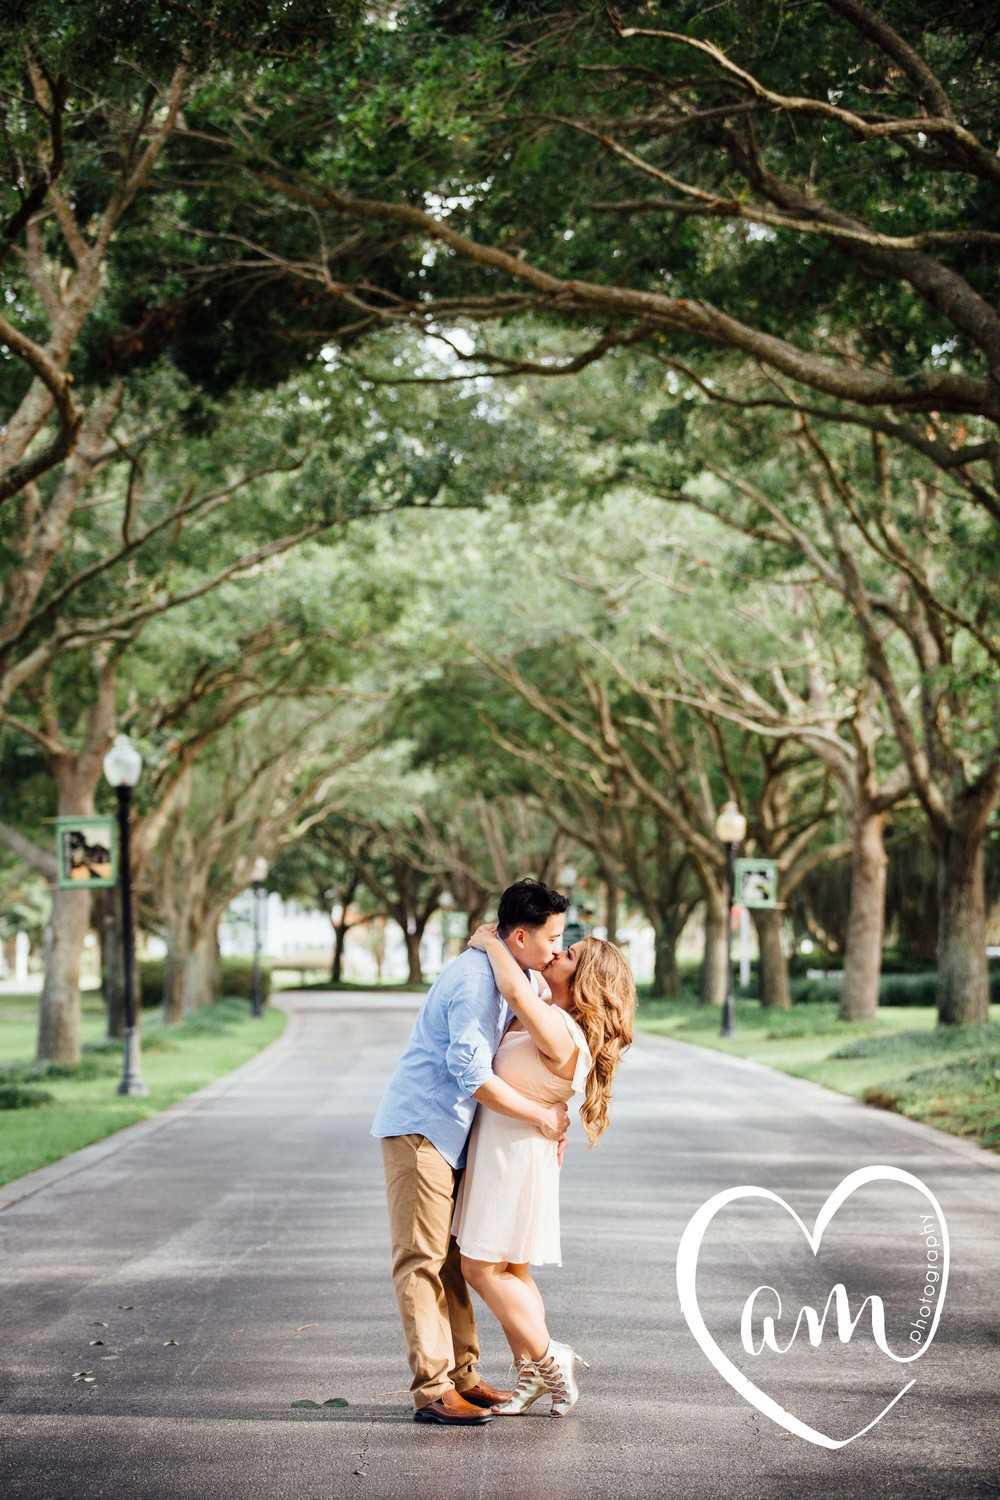 Engagement photos at Cypress Grove Estate House in Orlando, Florida.